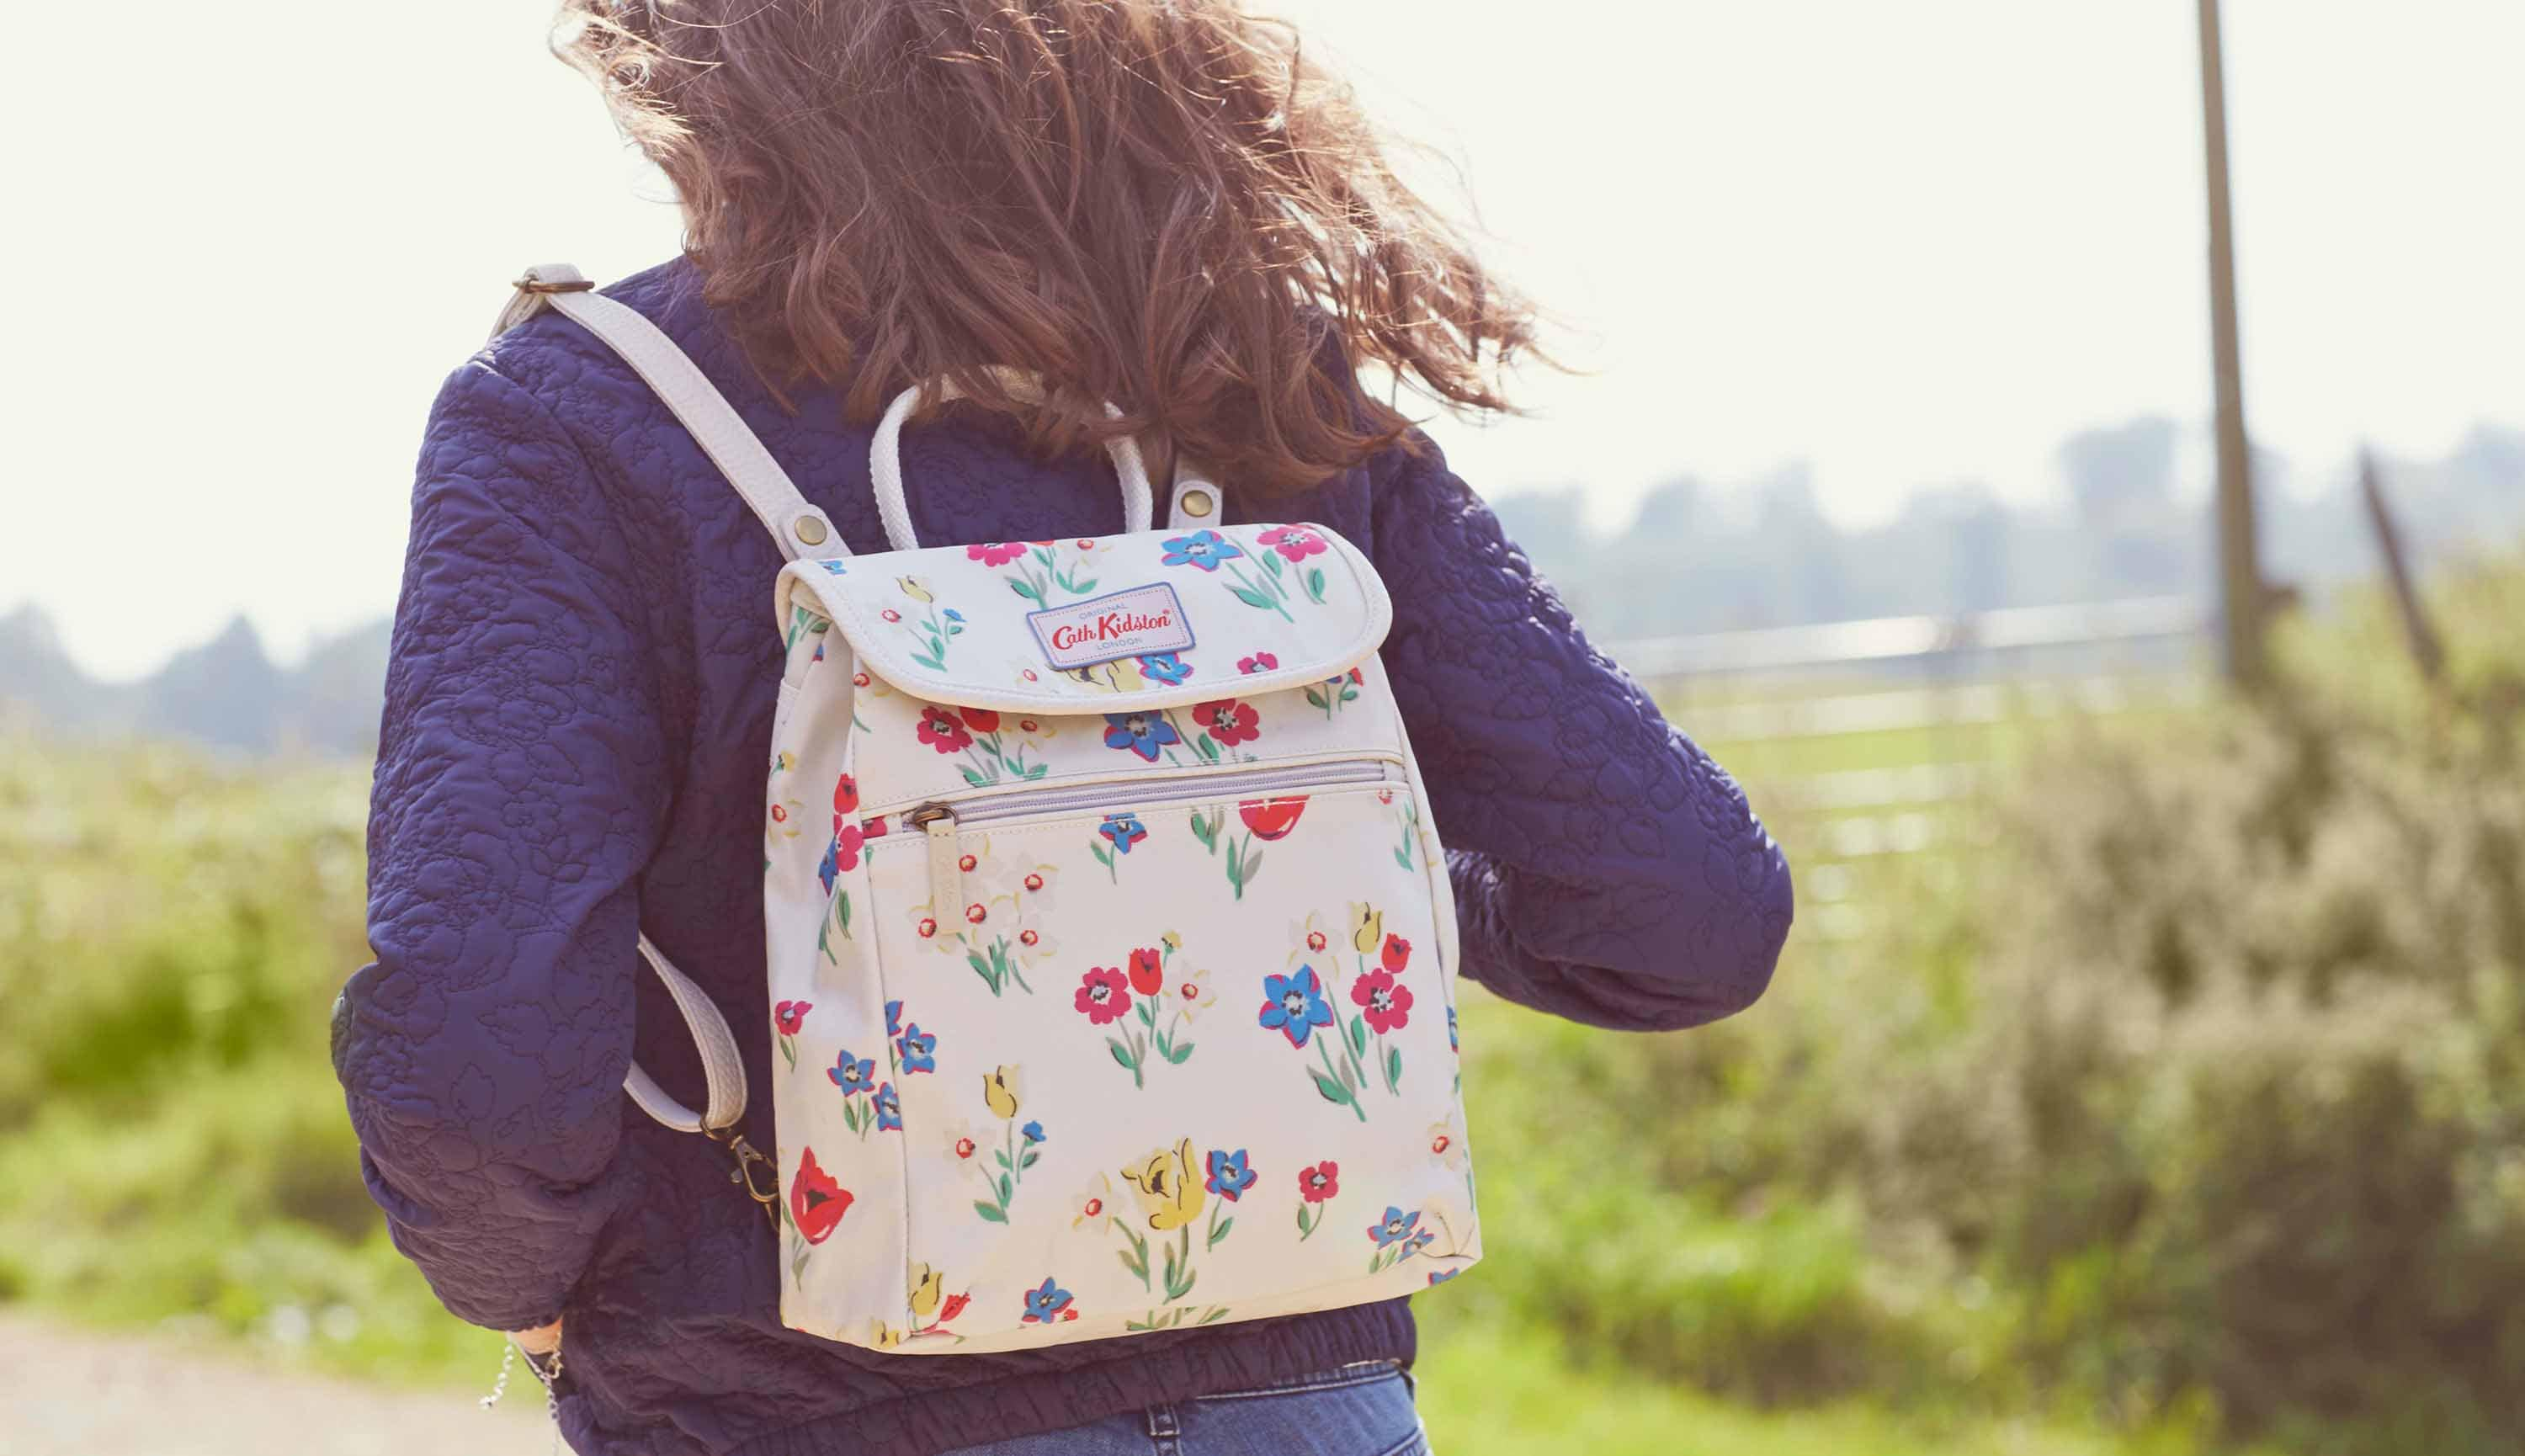 Cath Kidston - Paradise Bunch Handbag and Backpack